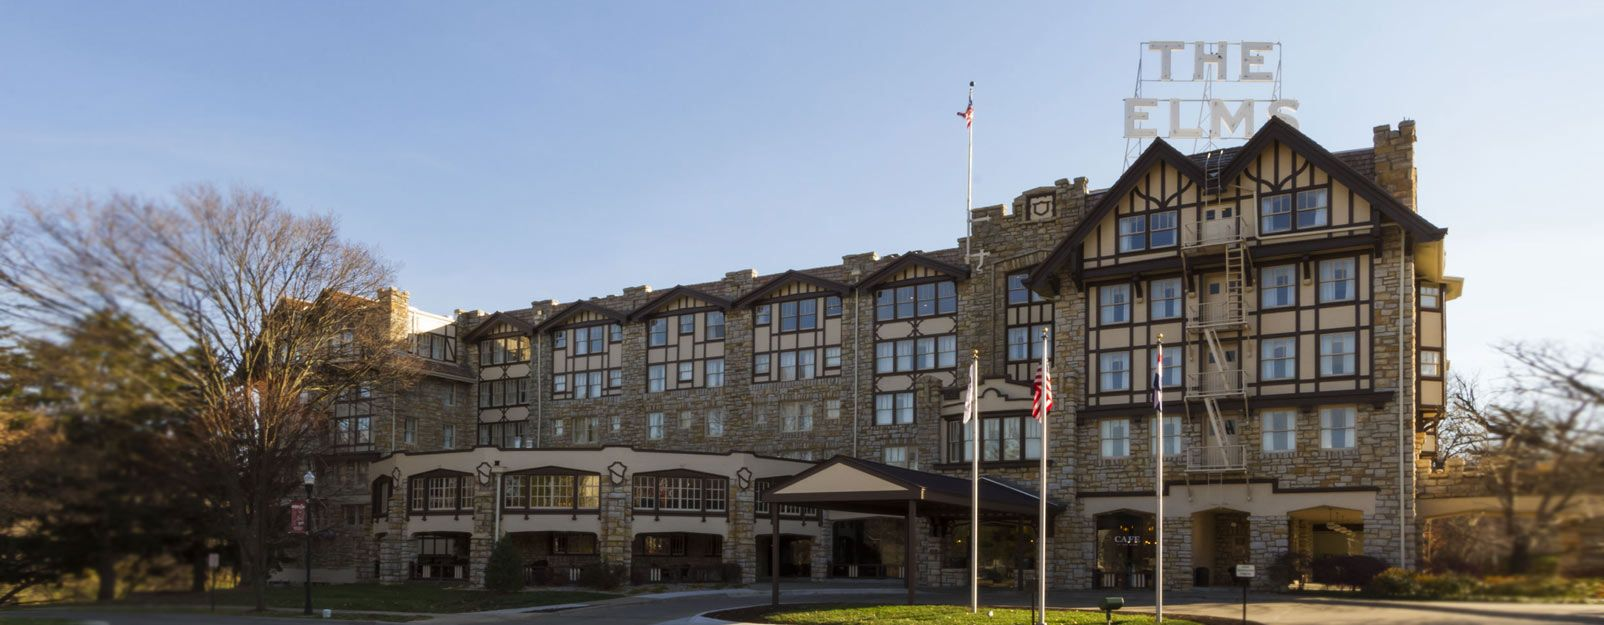 The Elms Hotel Excelsior Springs, MO